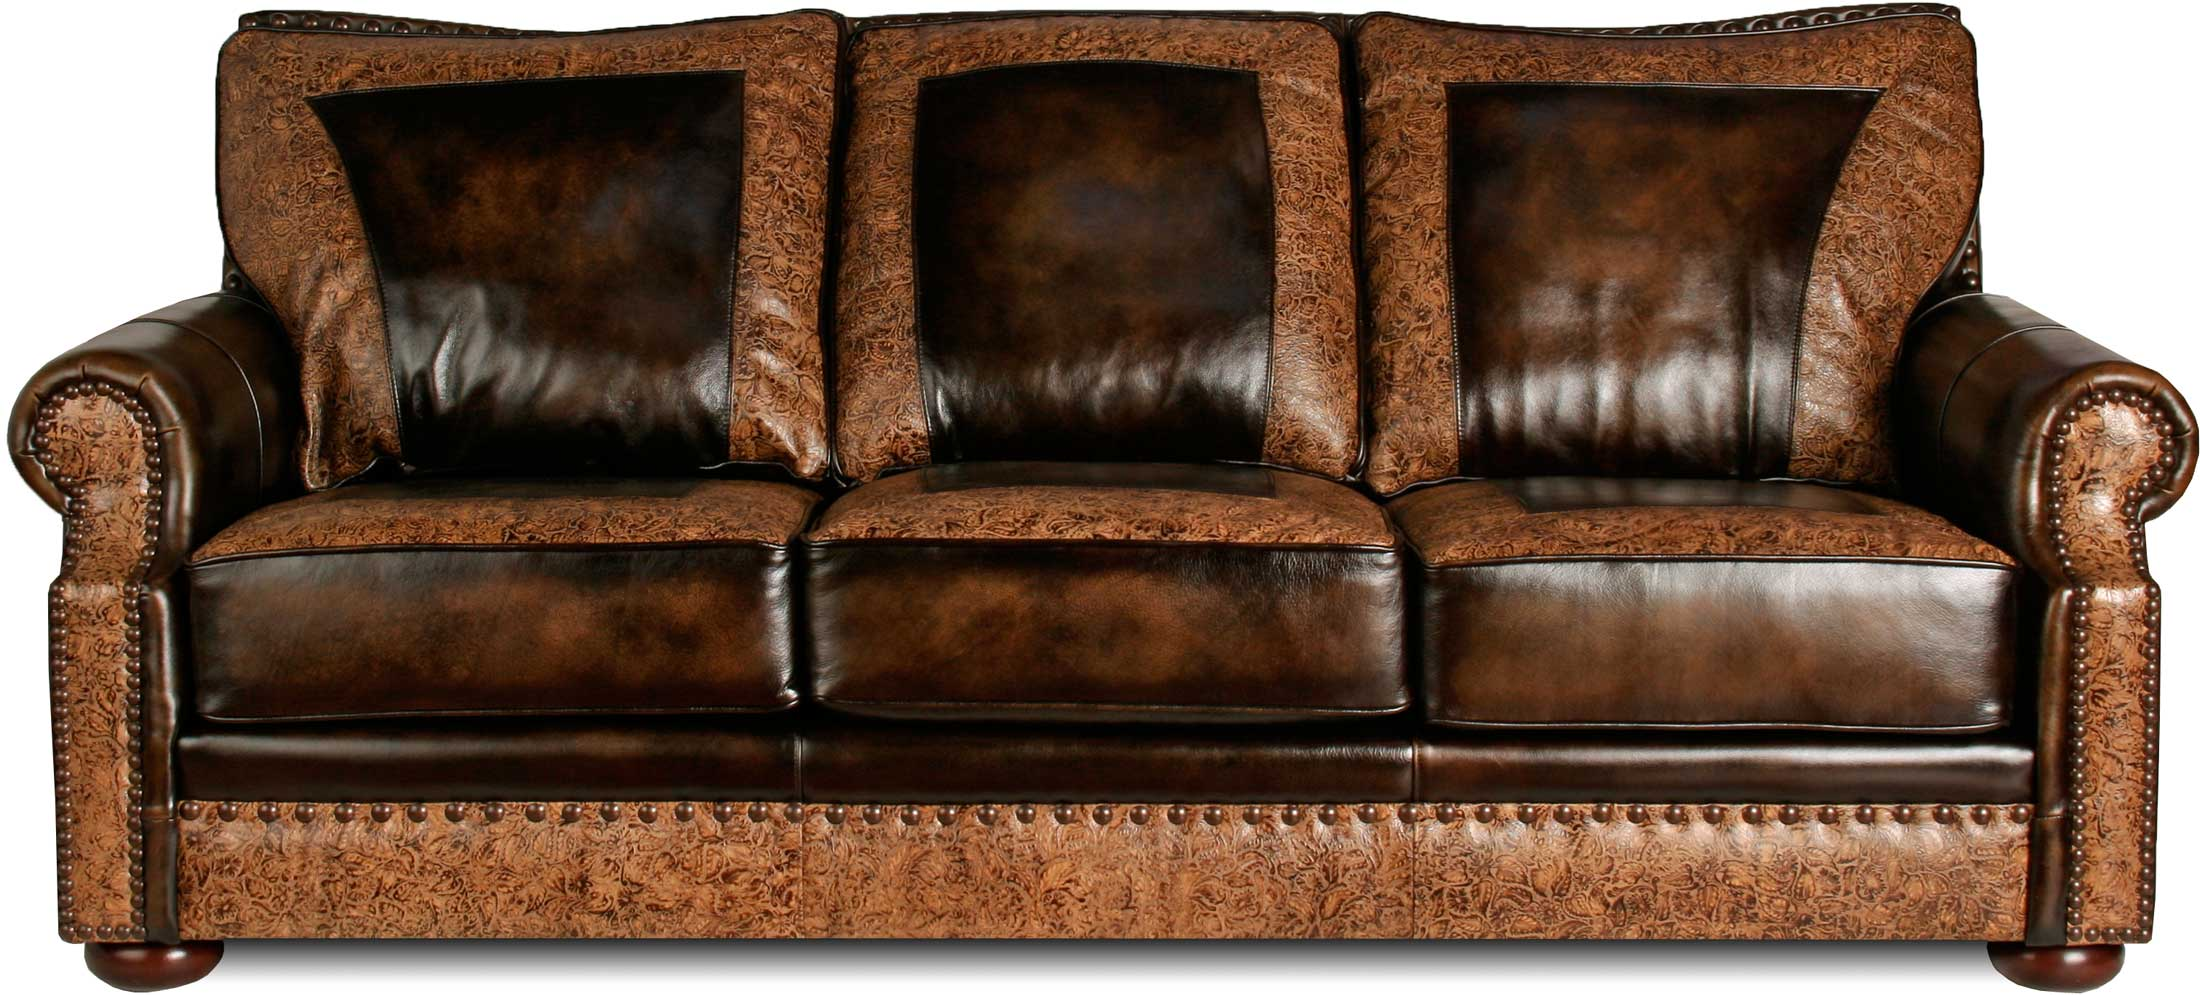 Texas leather furniture for Furniture leather sofa